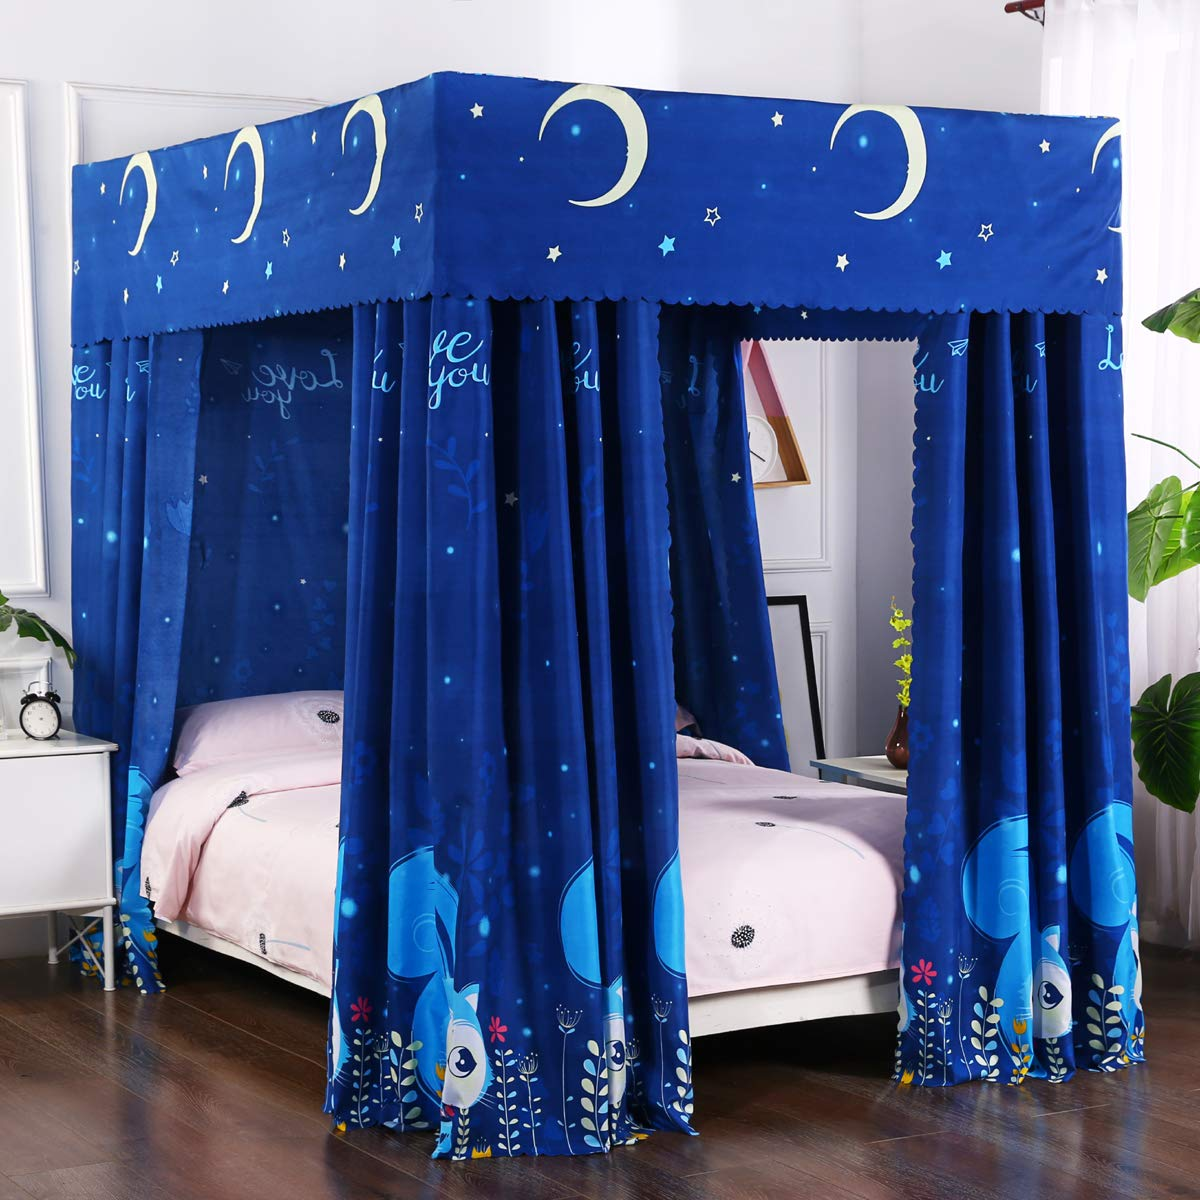 Mengersi Solid Four Corner Post Bed Curtain Canopy Mosquito Net for Boys Kids Queen, Blue